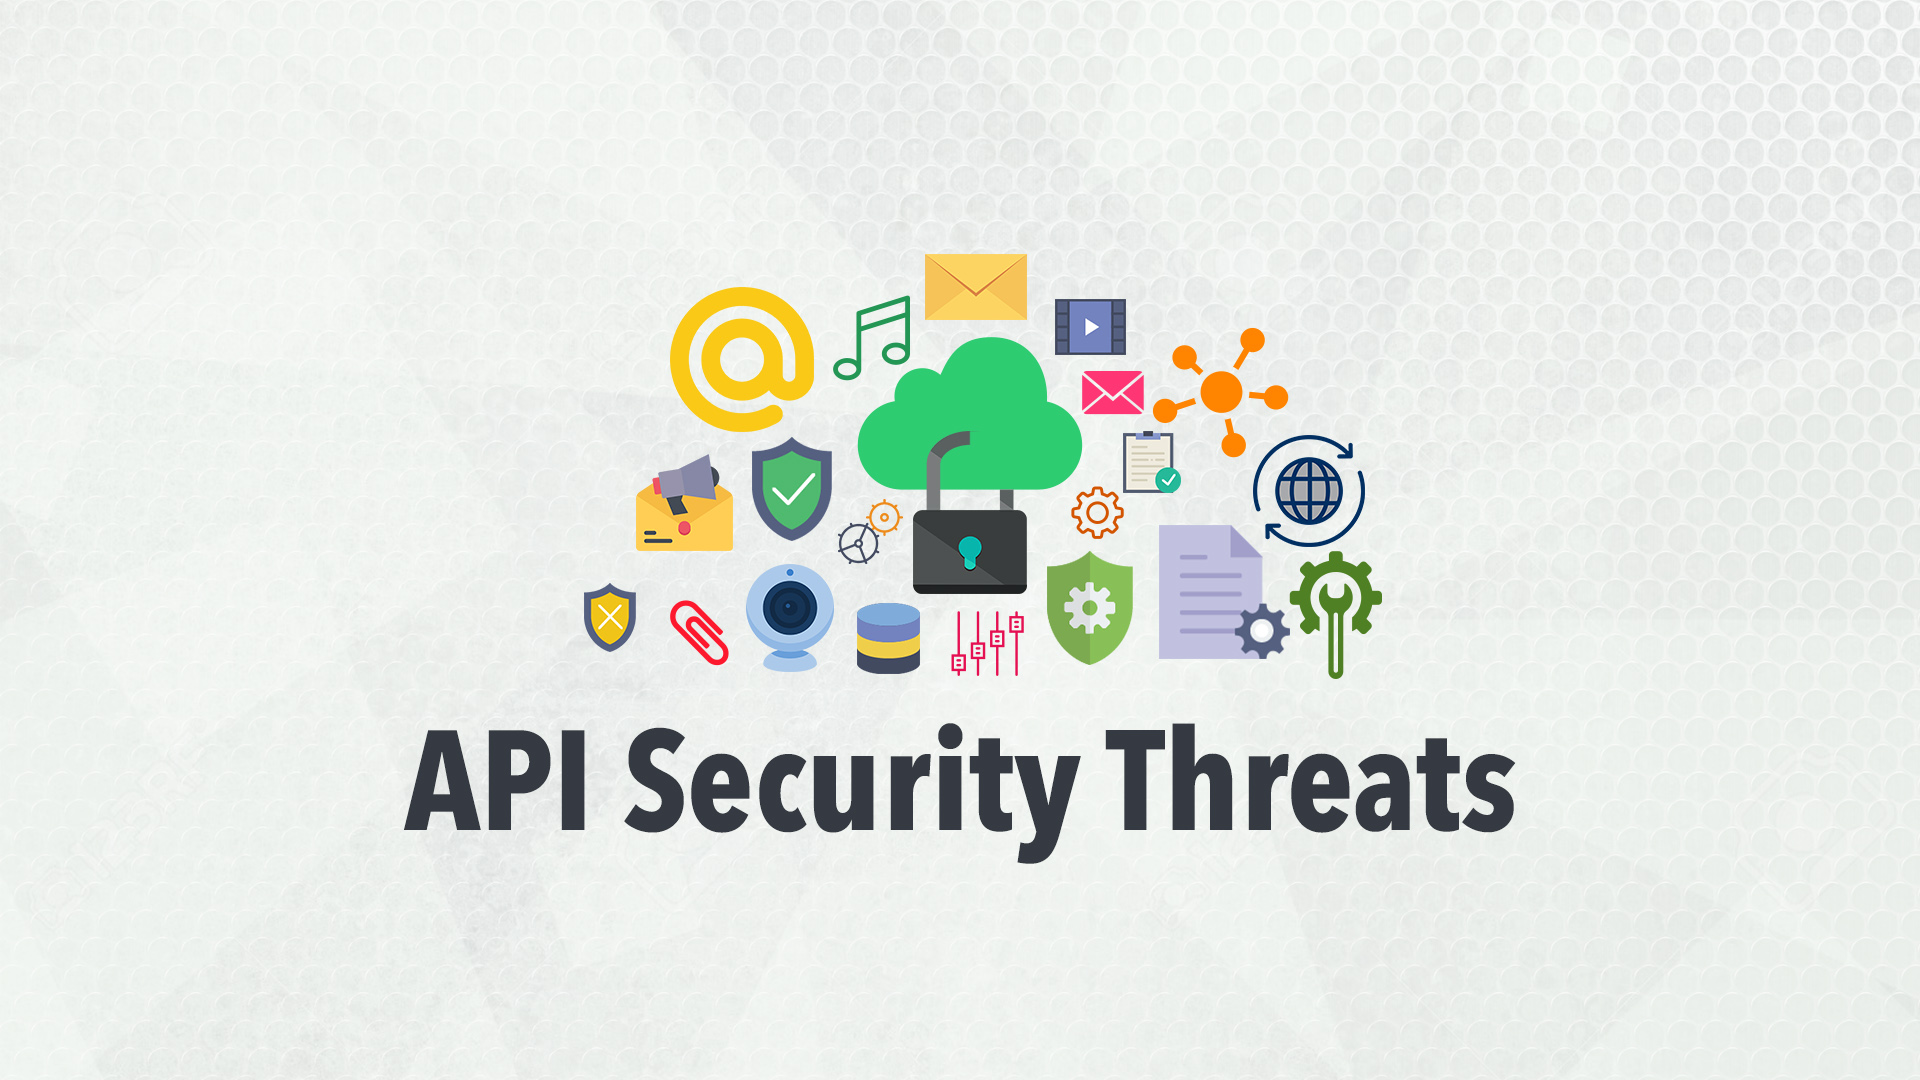 How to manage API security risks?